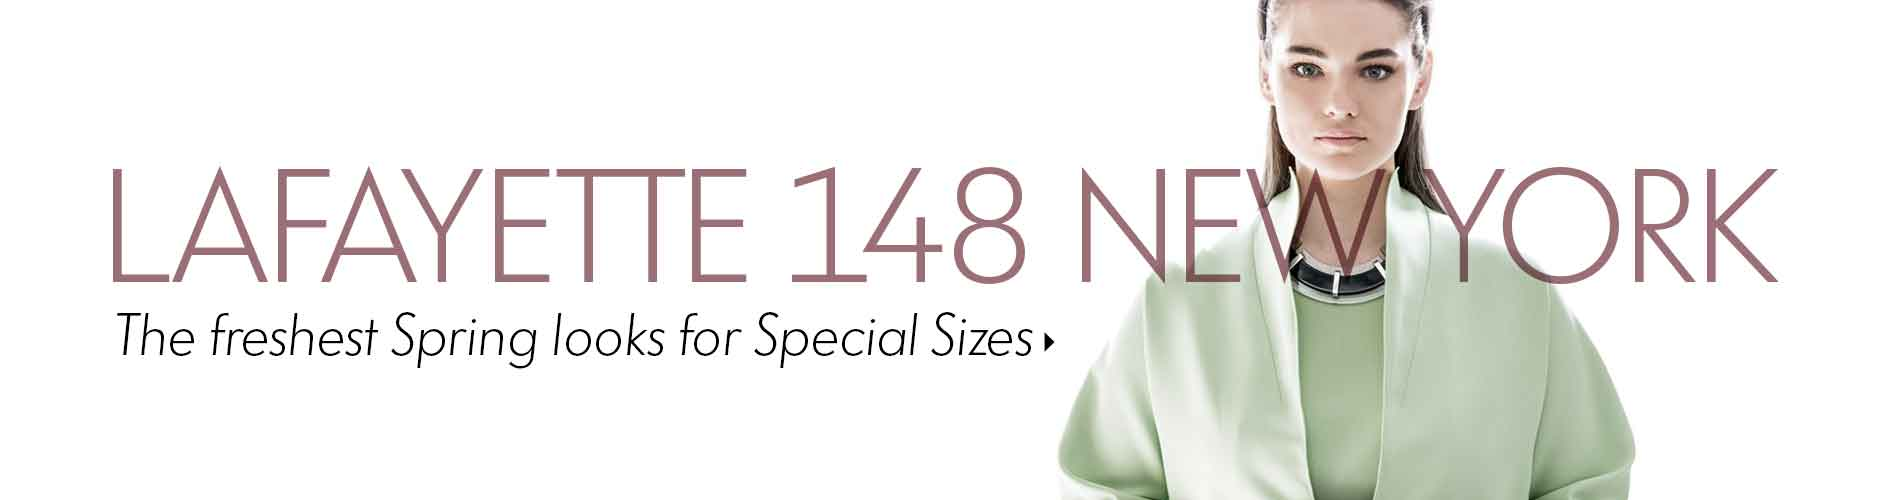 Lafayette 148 Special Sizes